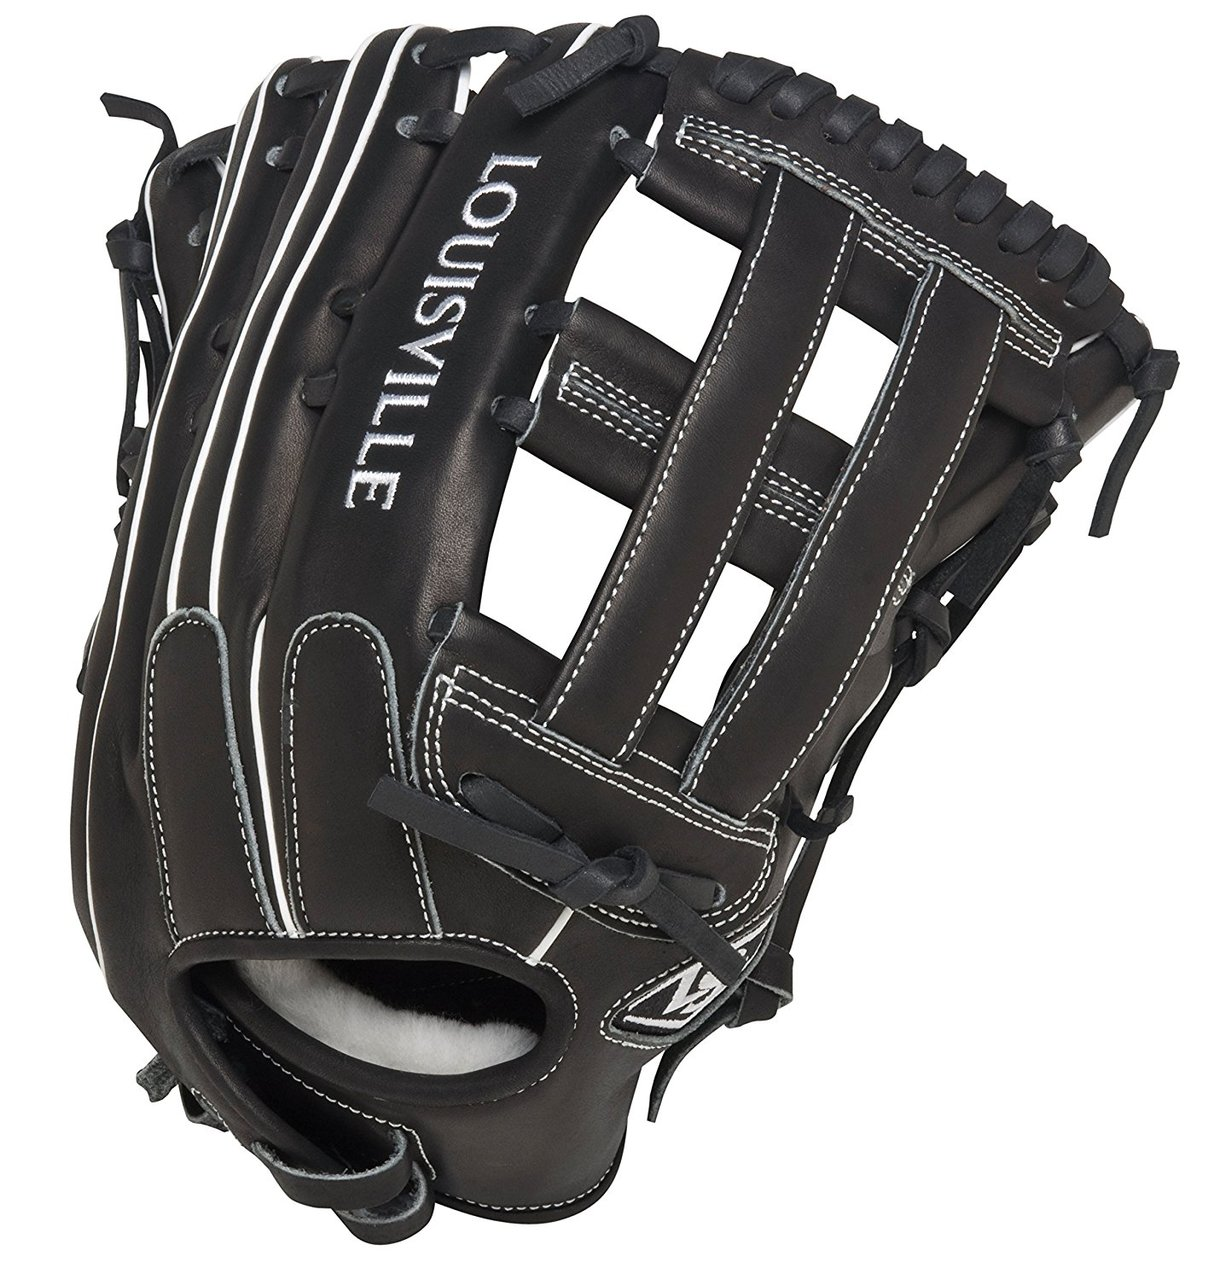 louisville-slugger-fgszbk5-super-z-black-fielding-glove-13-5-inch-left-hand-throw FGSZBK5-1350-Left Handed Throw  044277051952 Professional-grade oil infused leather Combines unmatched durability with ultra quick break-in